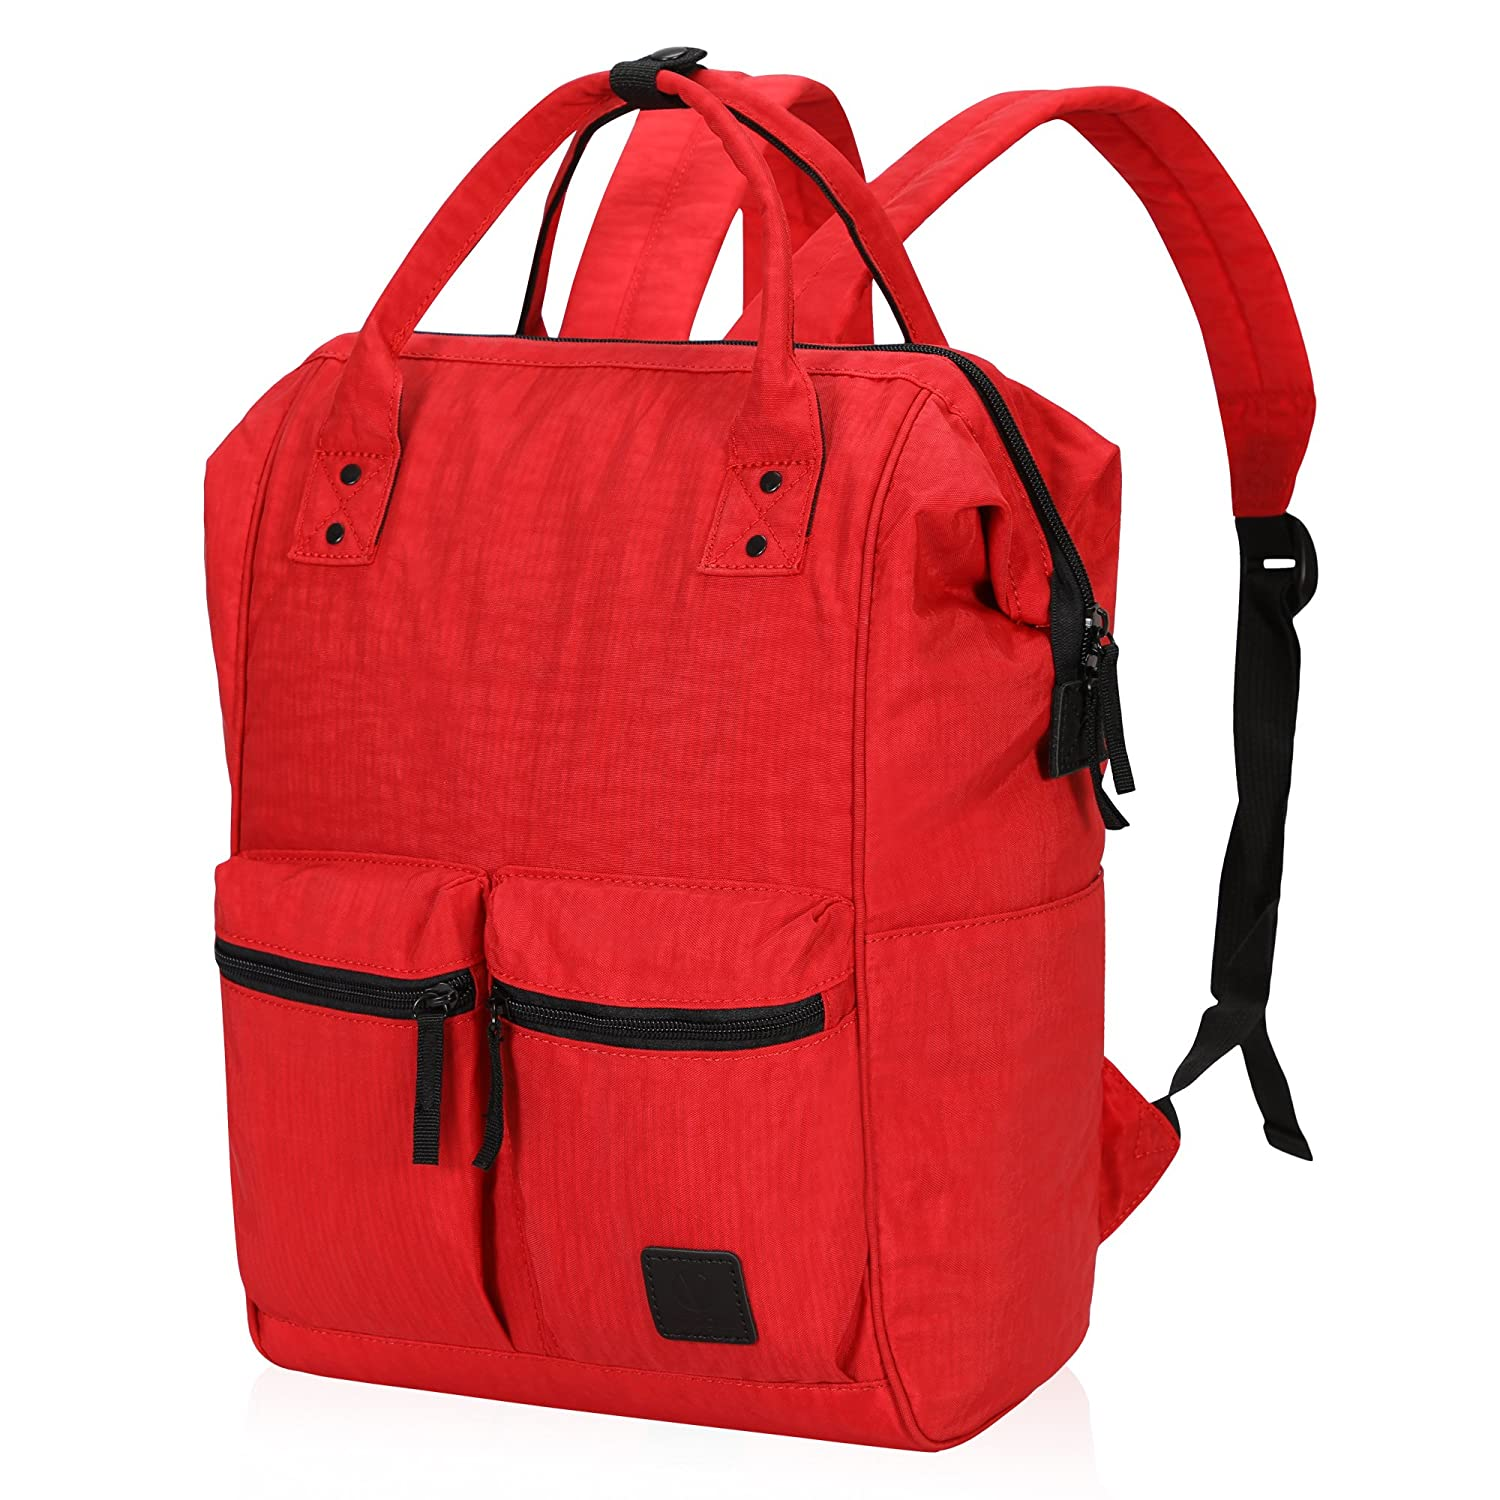 18c7a1dd98d6 Veegul Wide Open Multipurpose Travel Backpack Lightweight Casual Daypack  With Laptop Compartment Bright Red